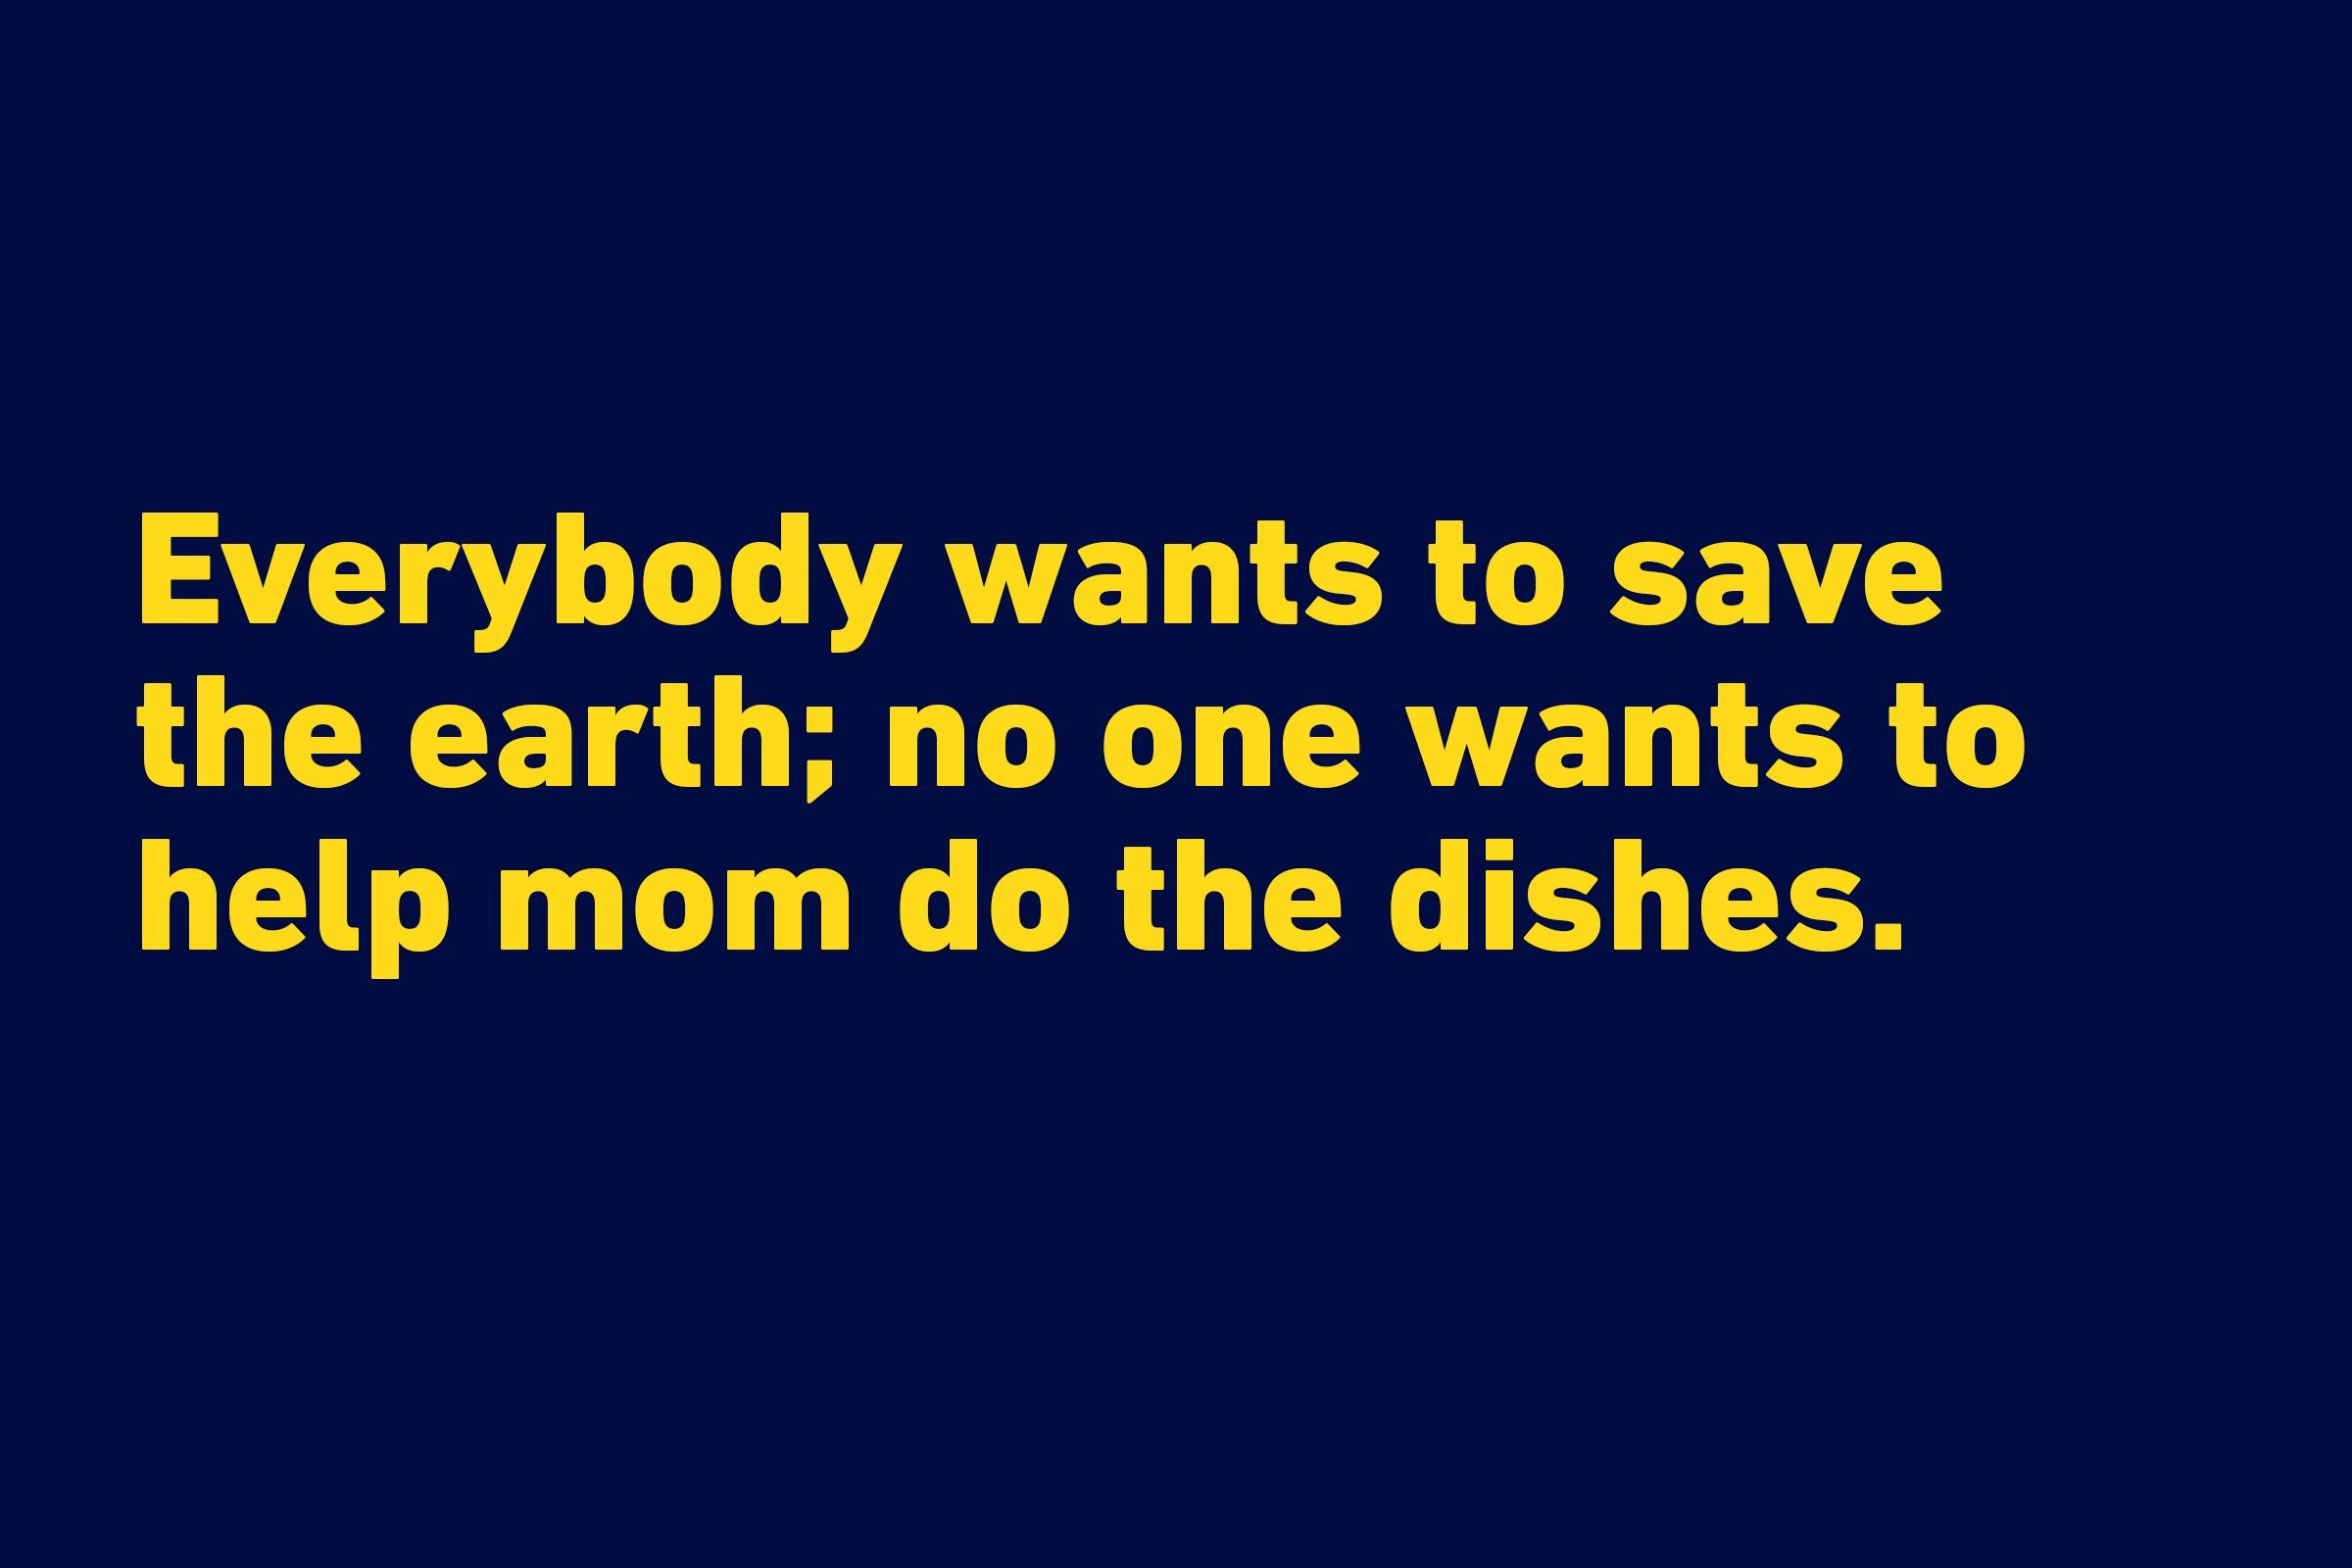 """Everybody wants to save the earth; no one wants to help mom do the dishes."" —P.J. O'Rourke"